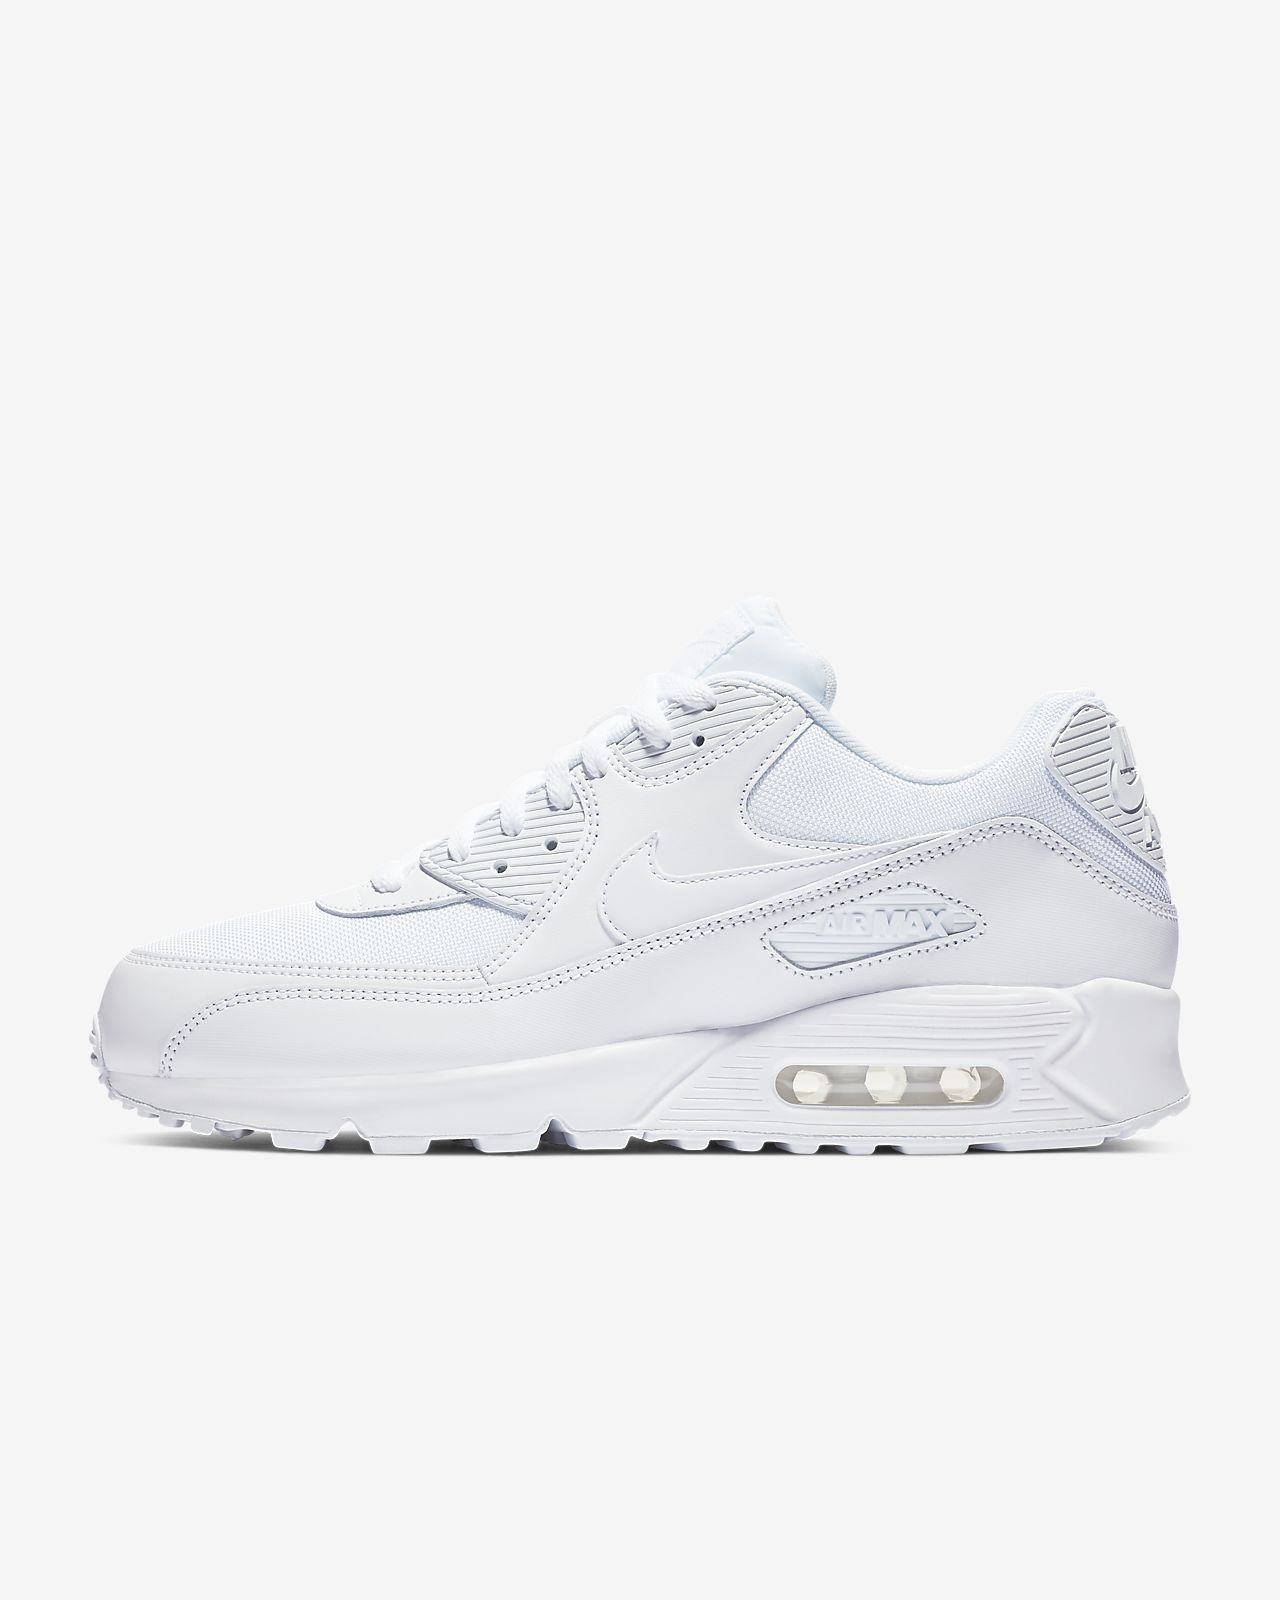 5a4b411b181 Nike Air Max 90 Essential Men s Shoe. Nike.com MY